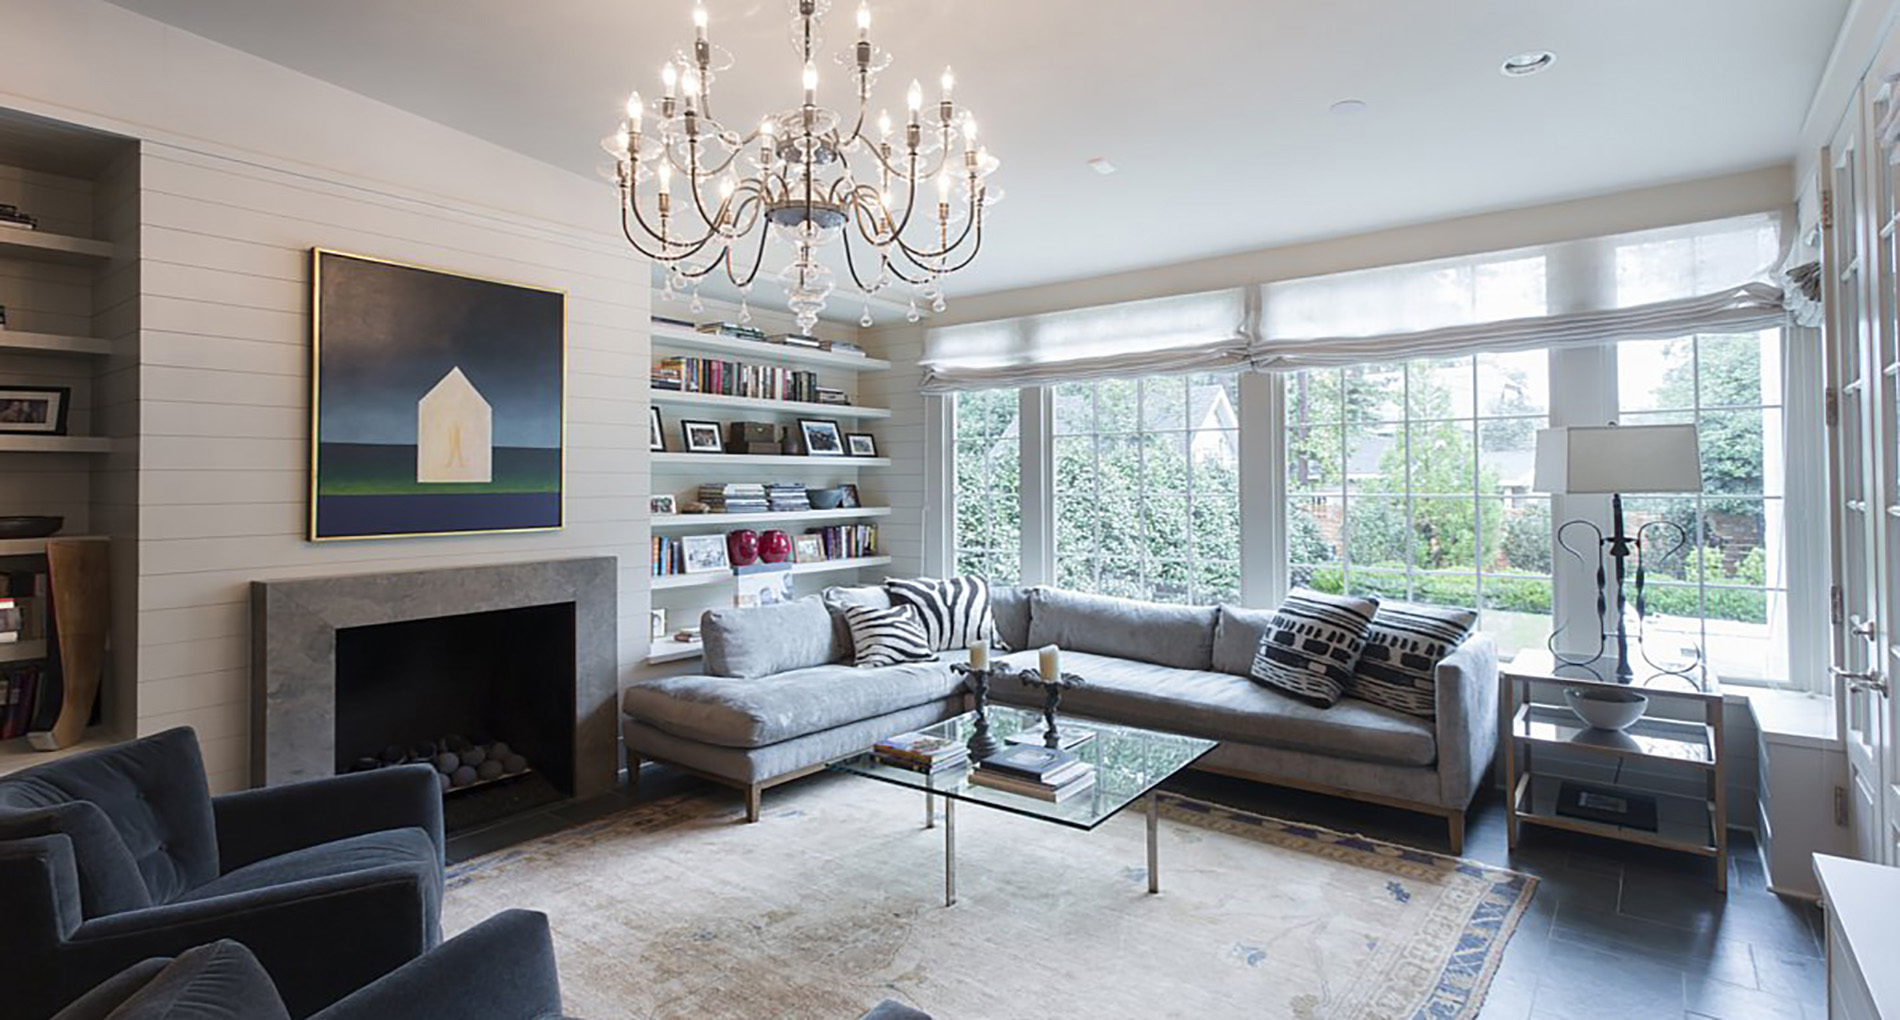 Home Remodeling & Renovations in Charlotte | Alair Homes Charlotte